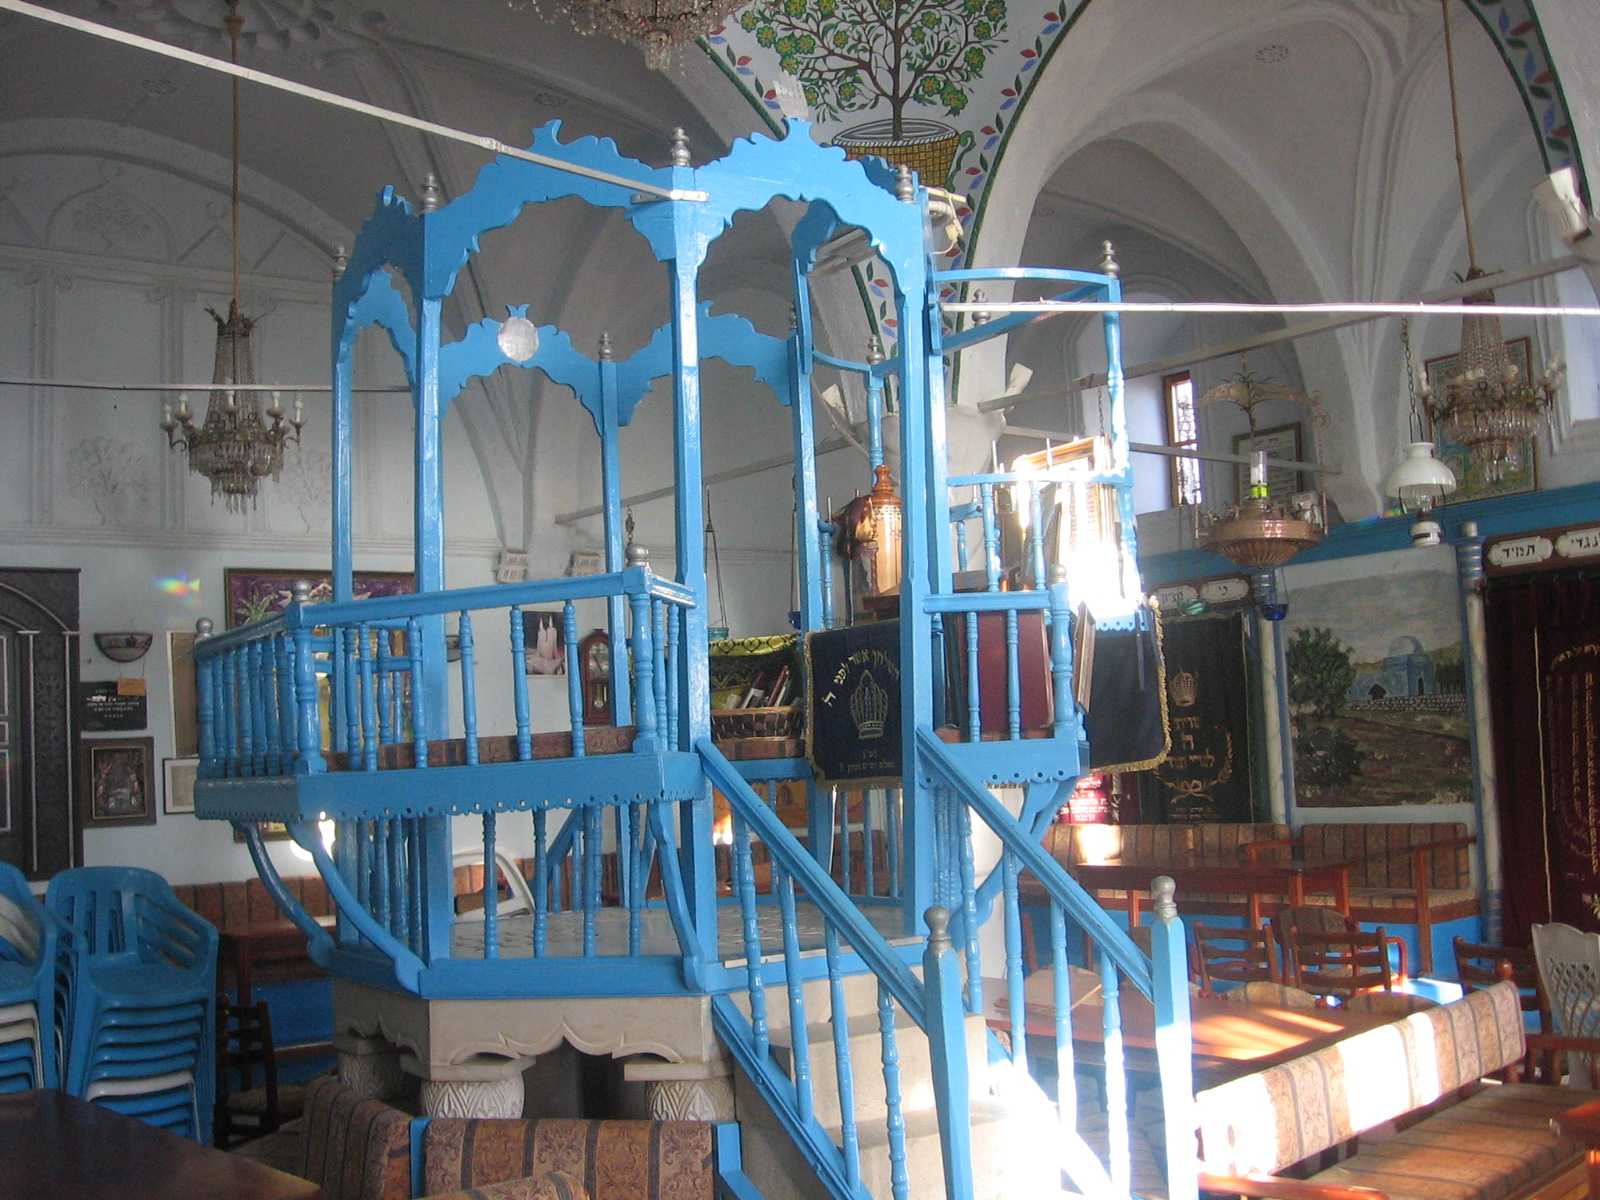 isramom klezmer music in the abuhav synagogue in tzfat